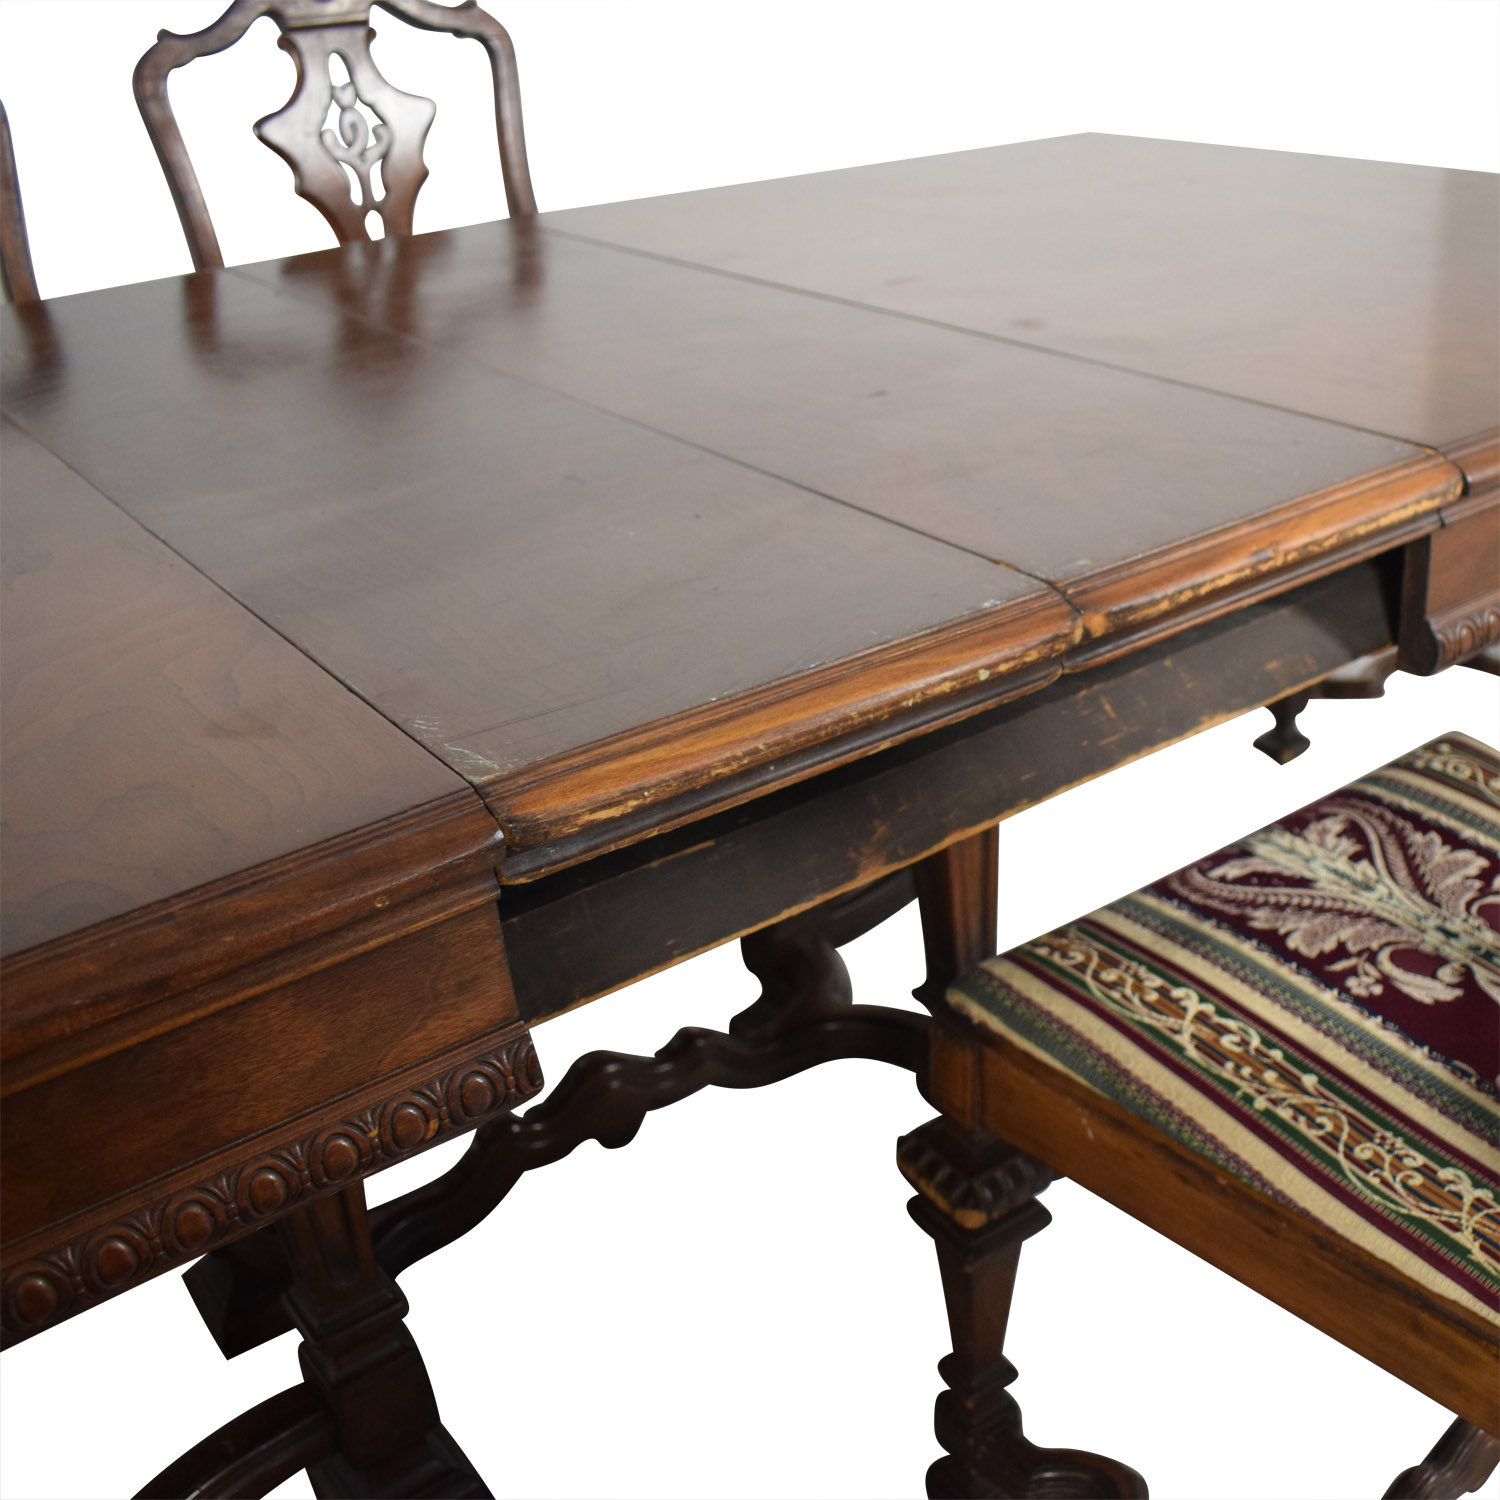 69% OFF   Jackobian Antique Dining Set With Burgundy Upholstered Chairs /  Tables